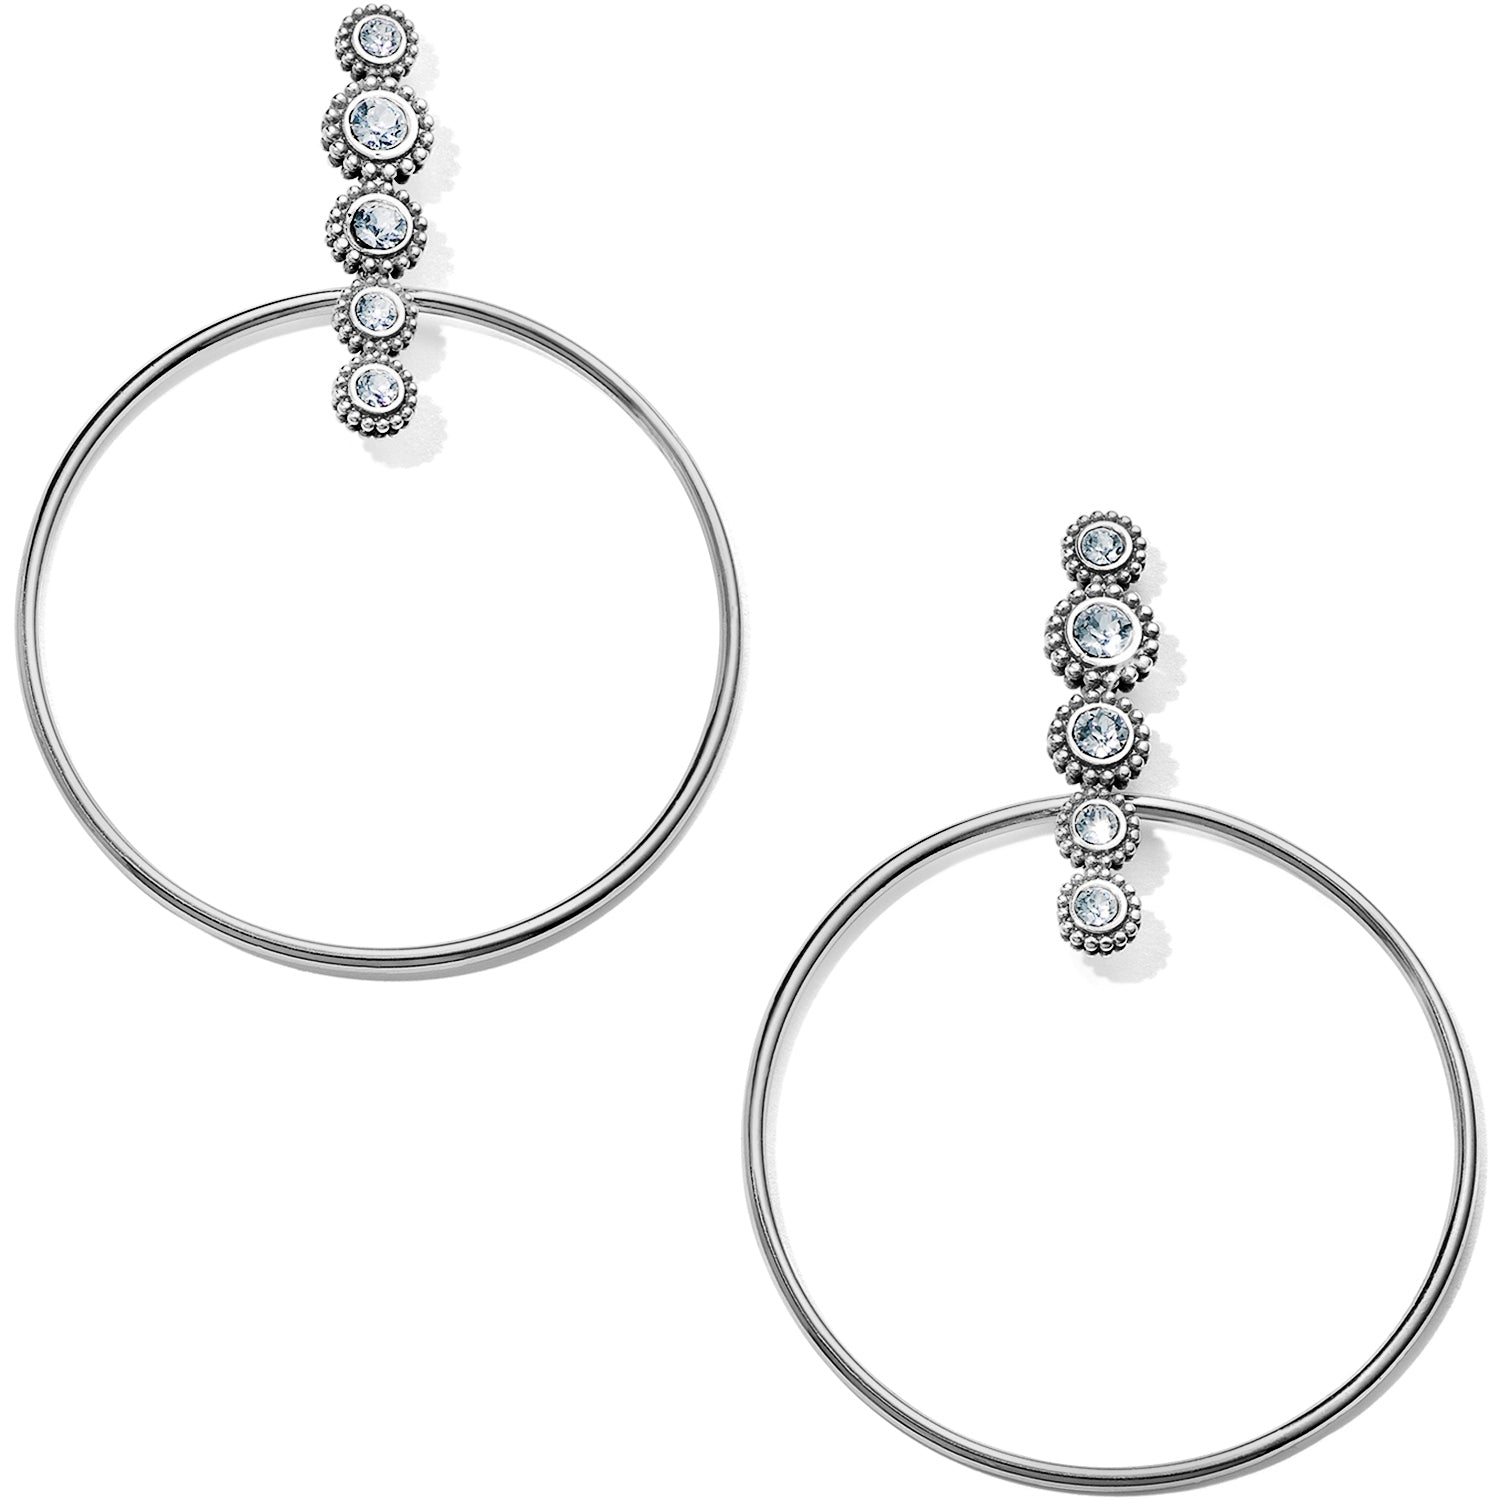 "These Twinkle Post Hoop Earrings from Brighton make a statement, combining modern geometry and subtle sparkle. Width: 1 3/4"" Type: Post with flat disc back Drop: 2"" Material: Swarovski crystal Finish: Silver plated"